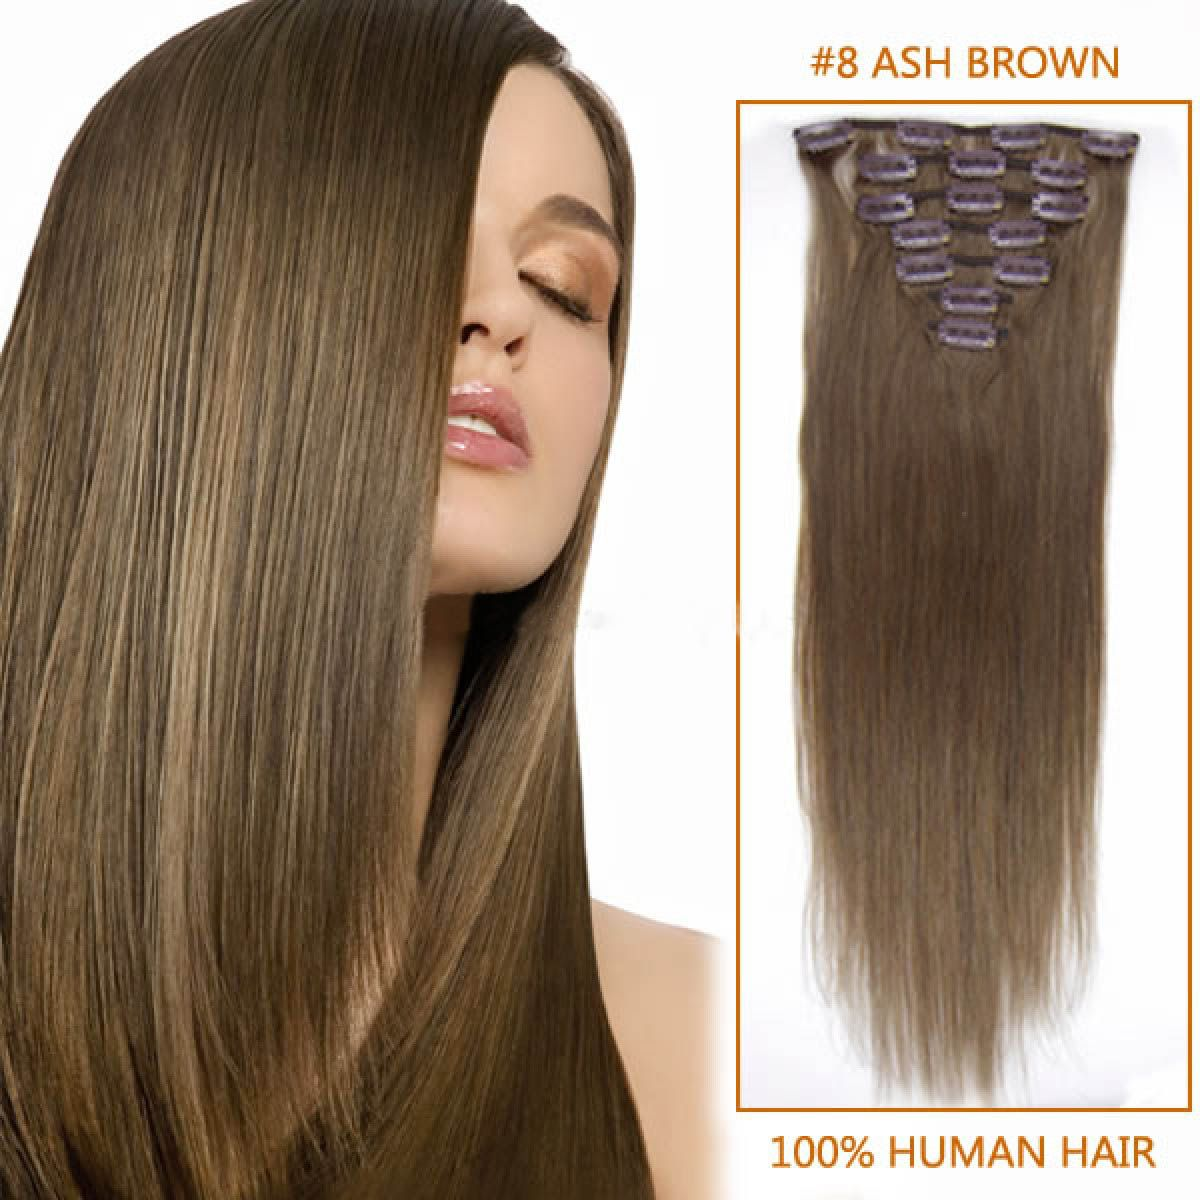 22 inch straight clip in remy hair extensions 8 light brown 10 32 inch long straight clip in real human hair extensions ash brown nice looking 11 pieces larger sets pmusecretfo Choice Image